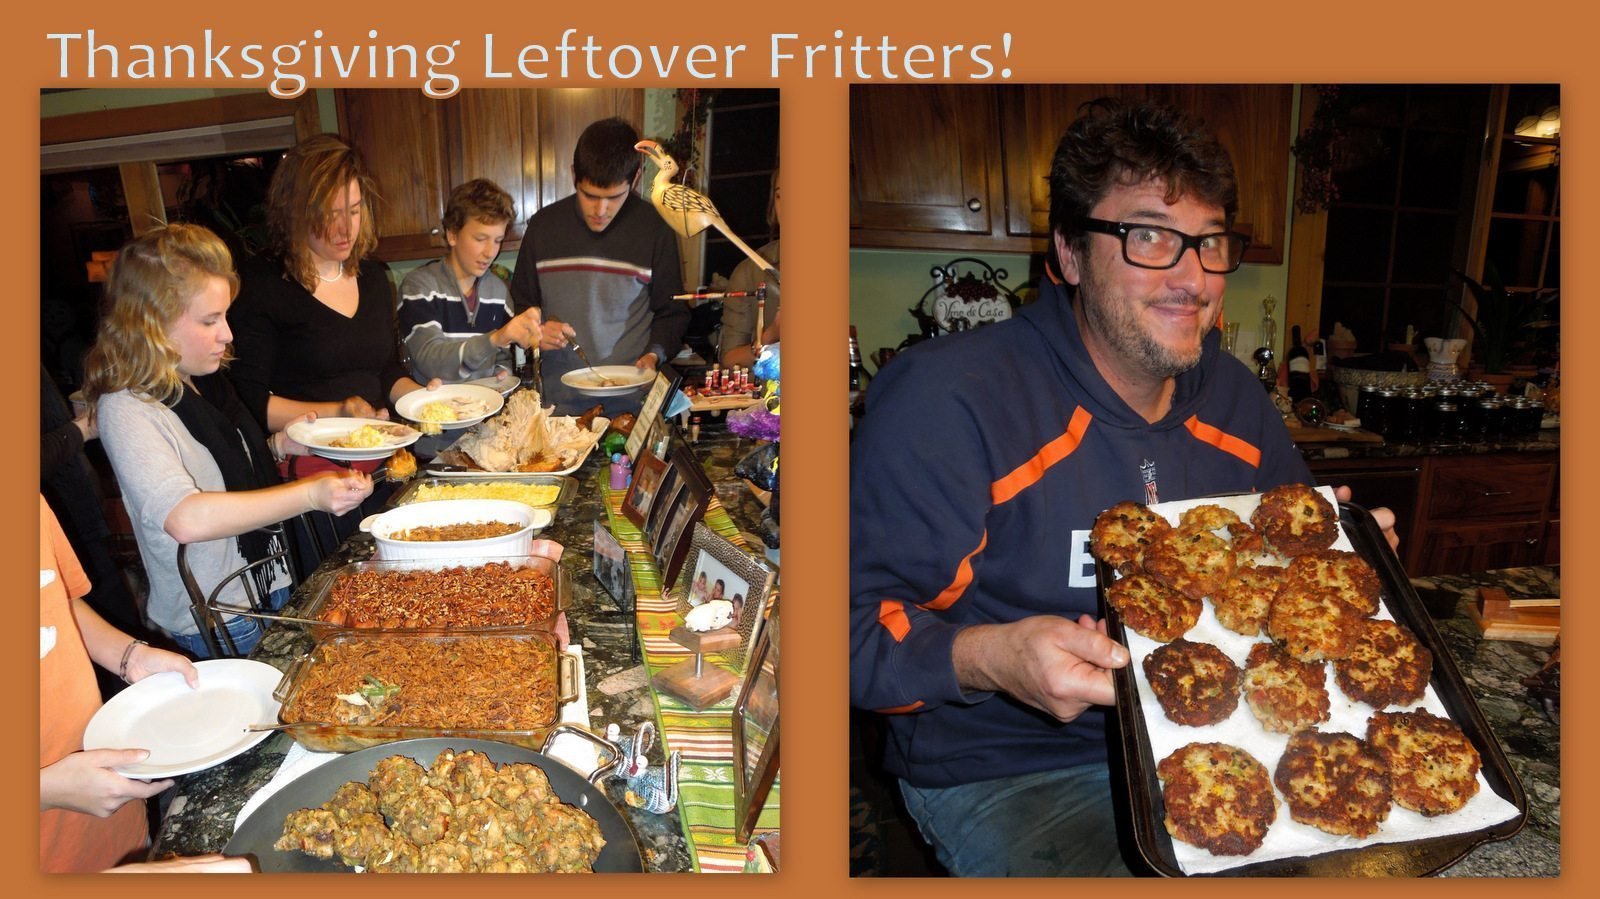 Image: Thanksgiving meal laid out and then fritter photo